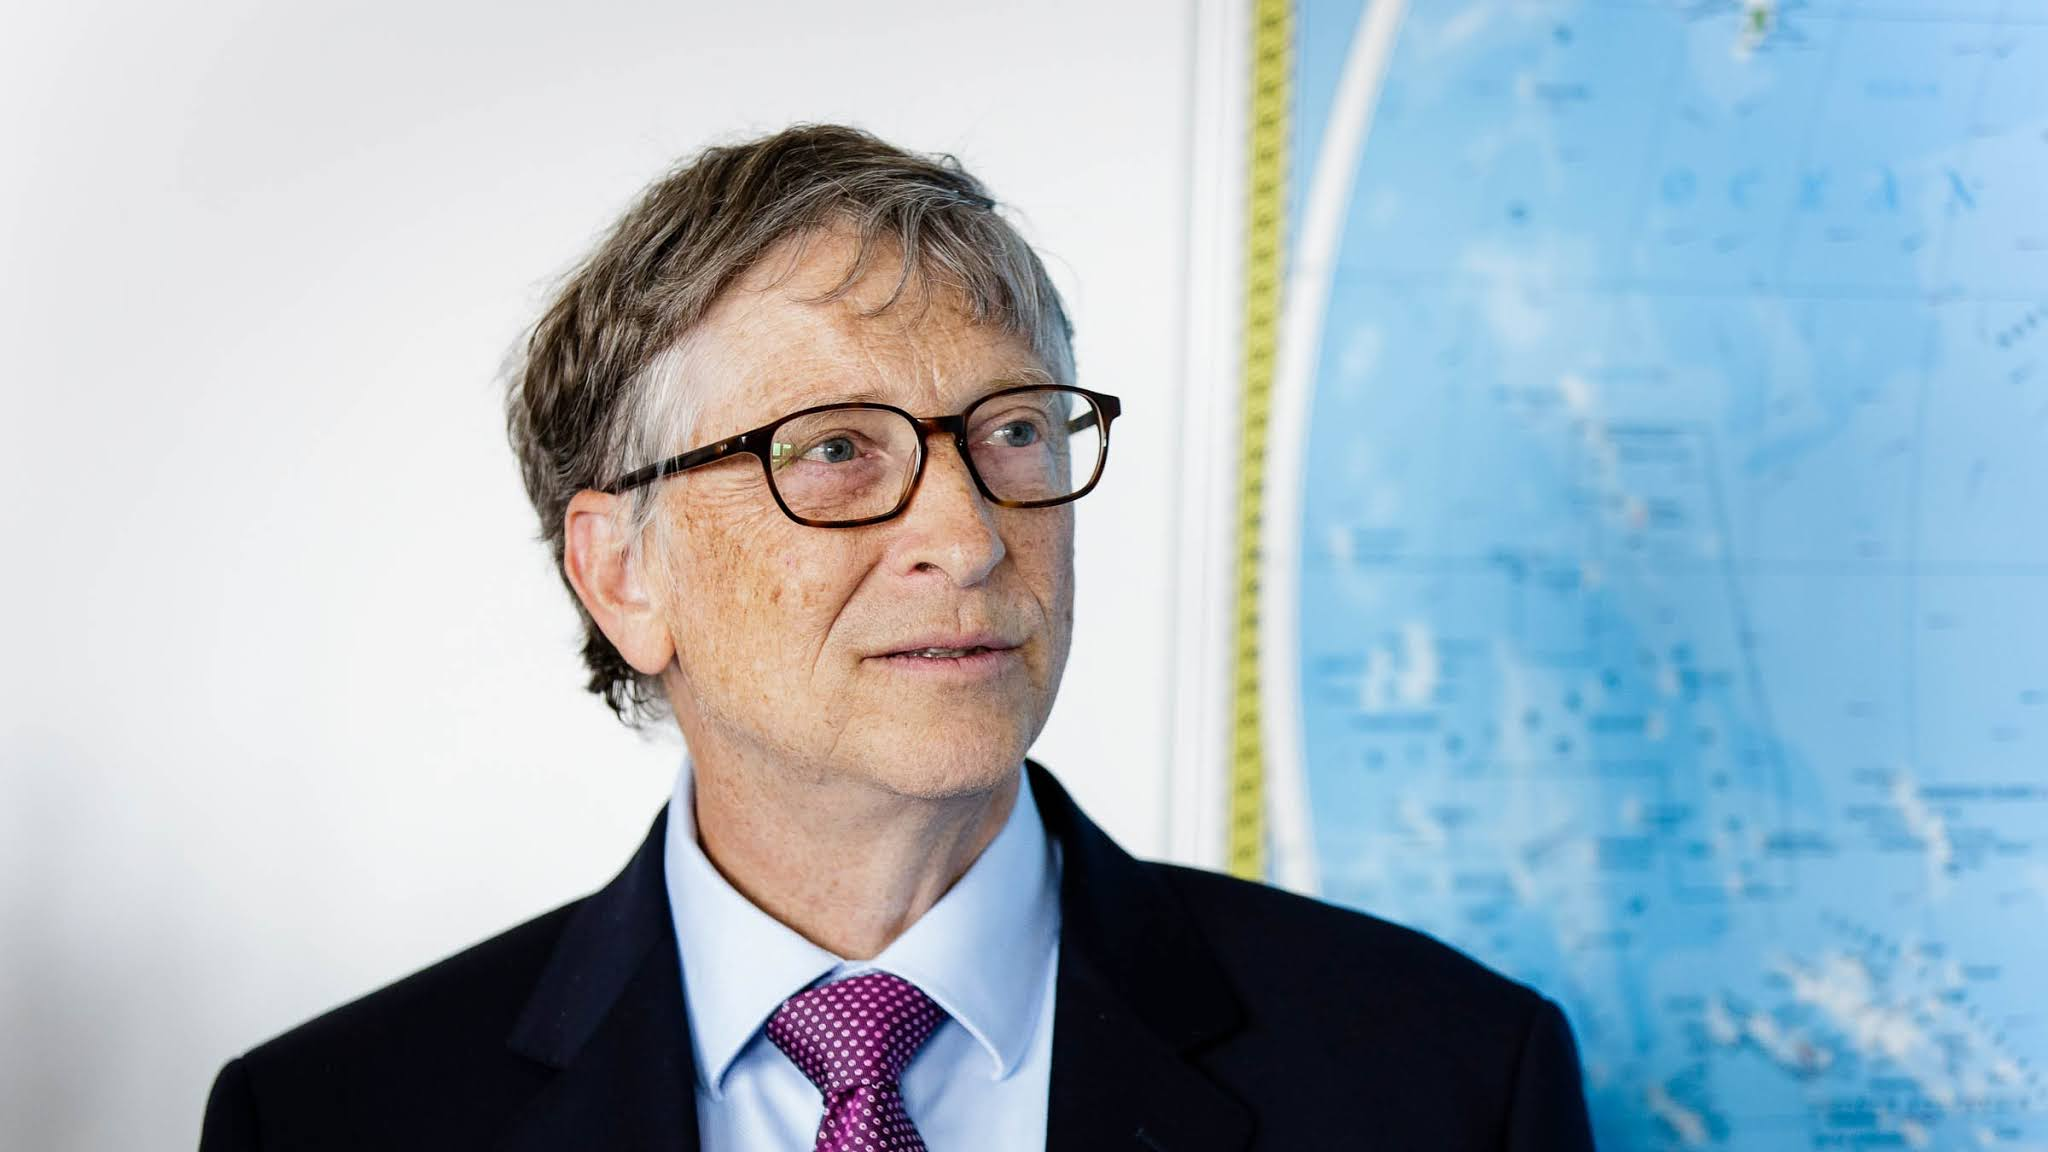 Bill Gates says that Bitcoin is bad for the planet.